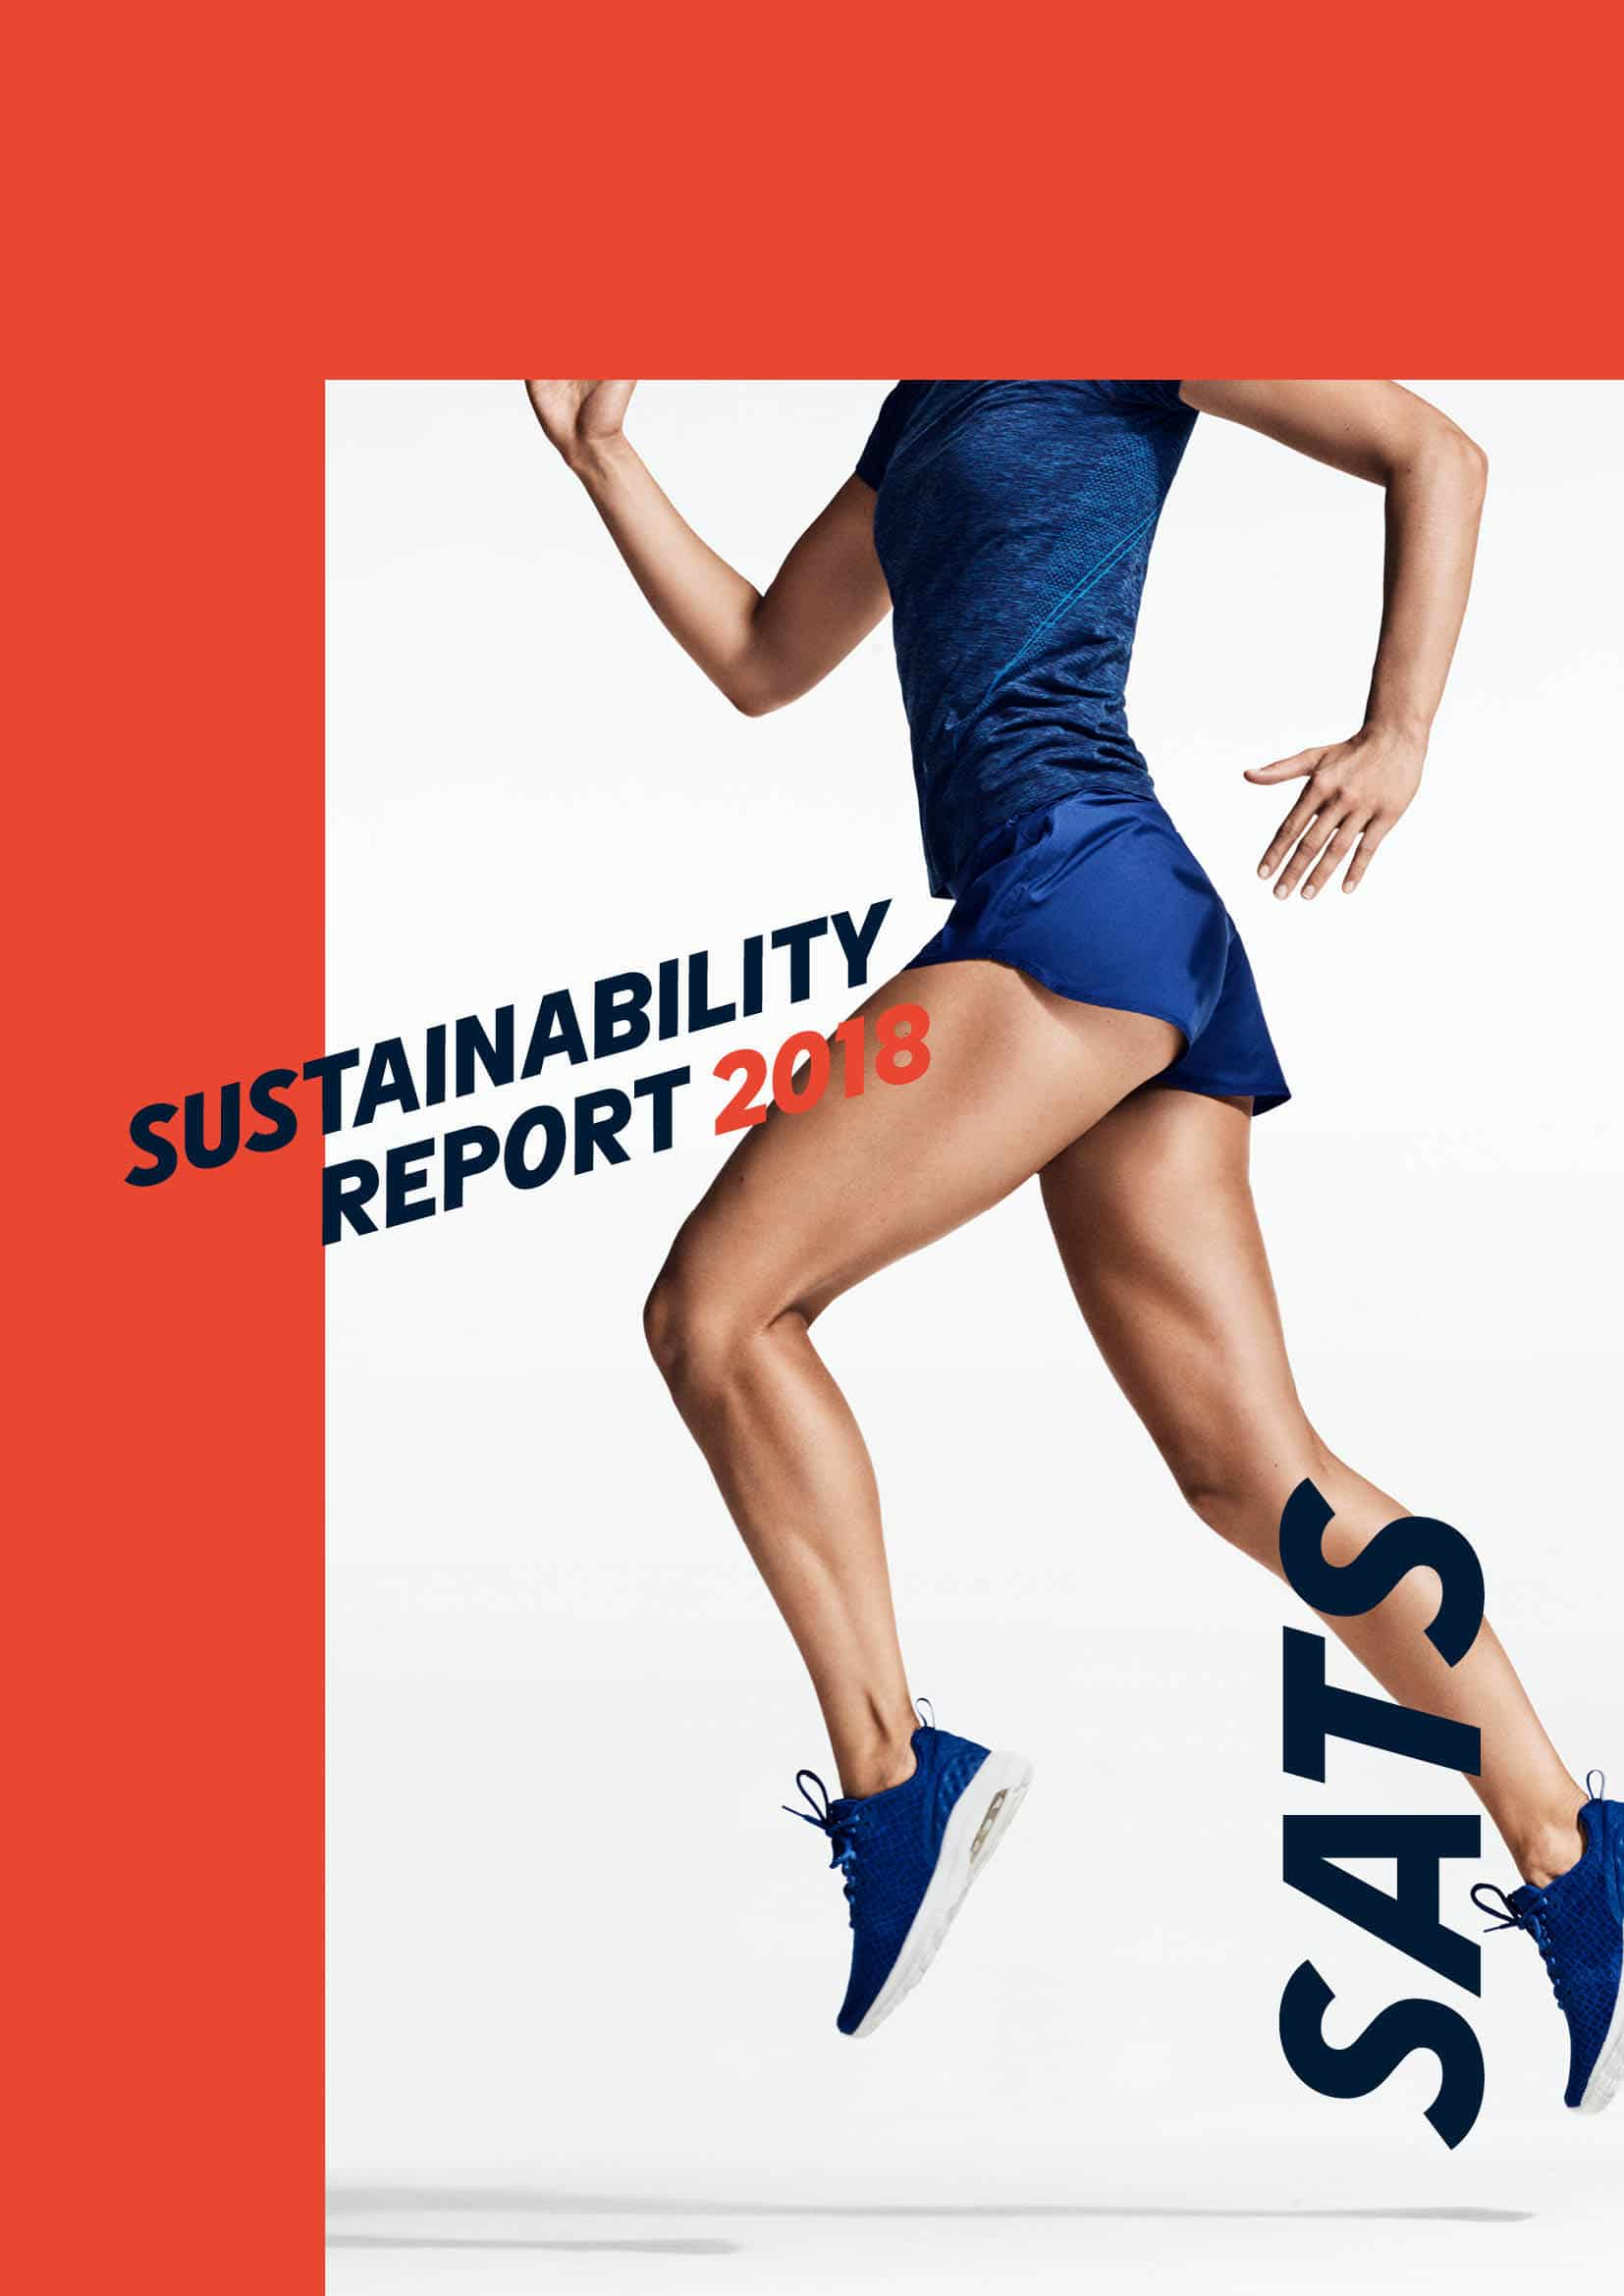 SATS Sustainability Report 2018